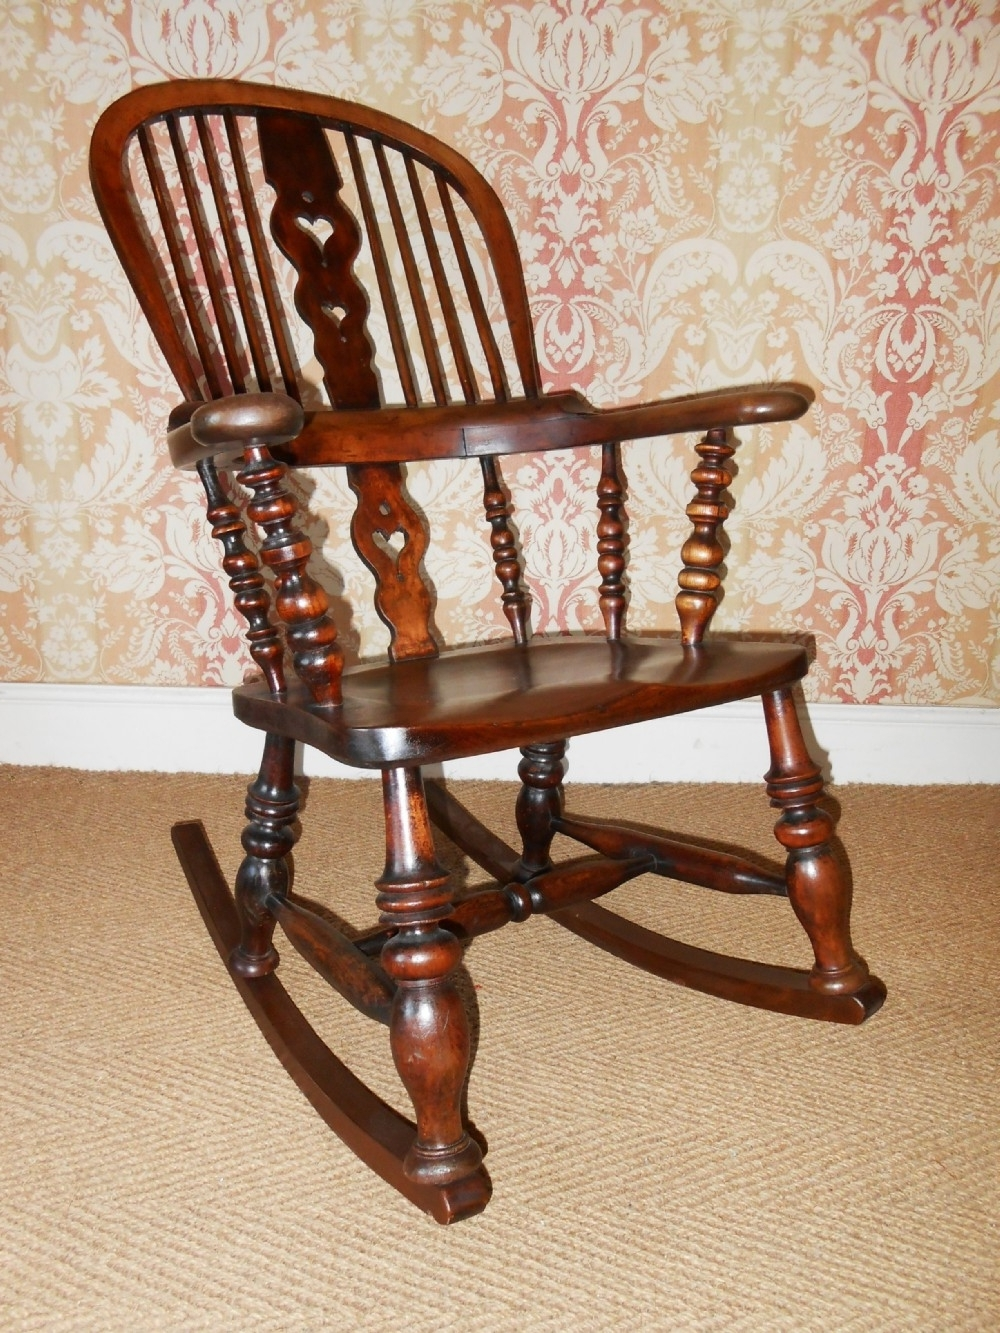 Sellingantiques With Regard To Most Current Victorian Rocking Chairs (View 9 of 15)